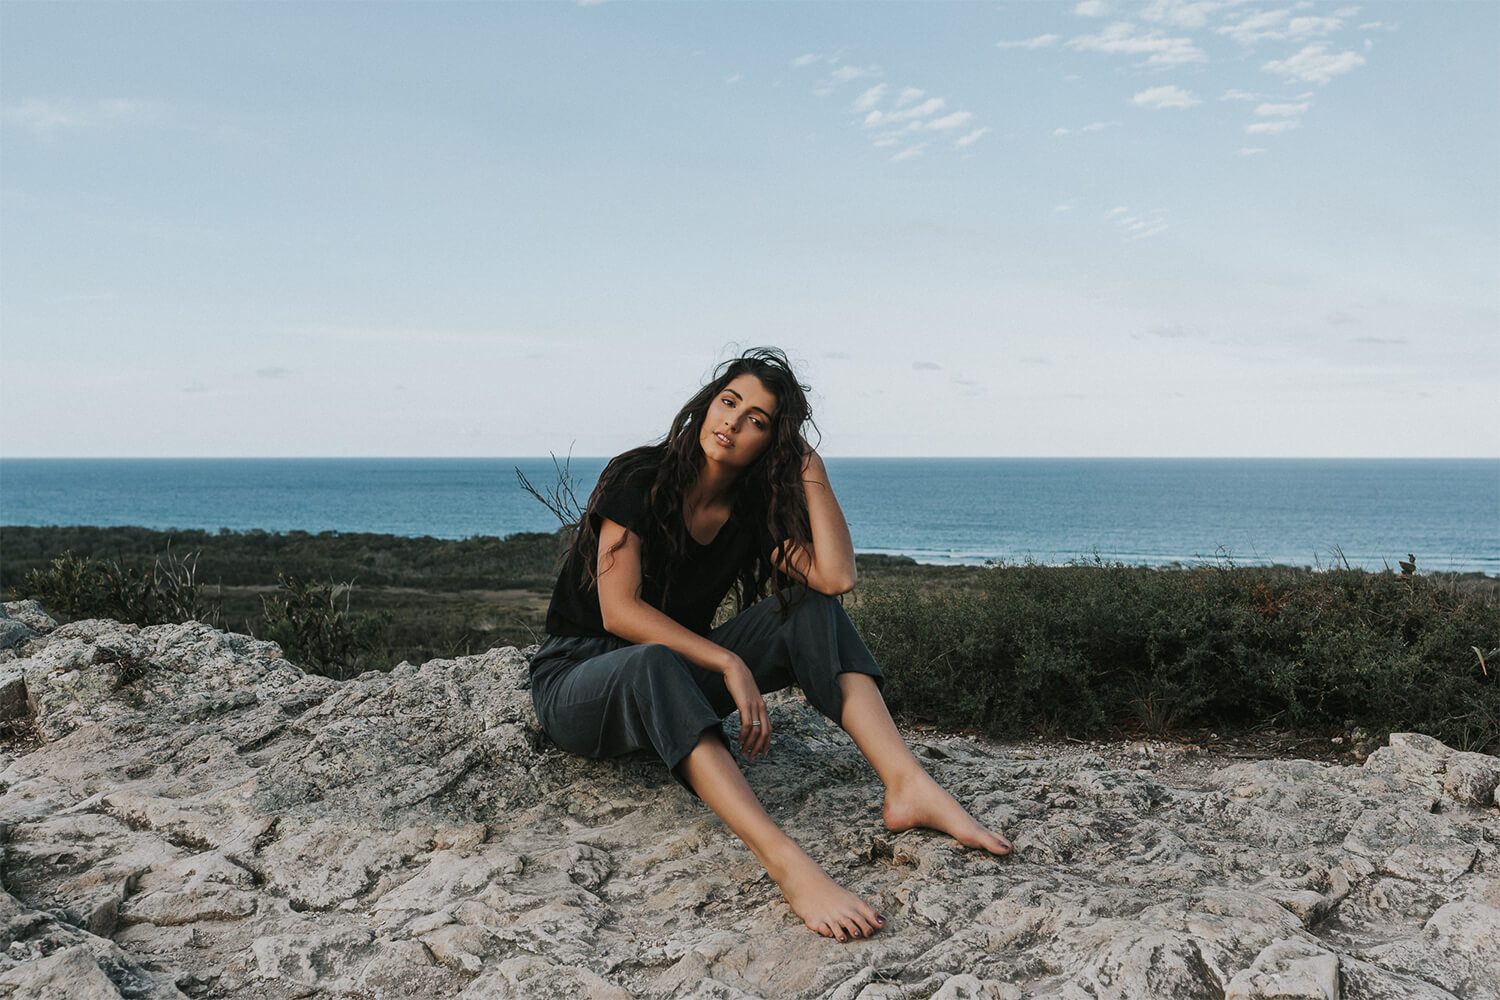 Tasi Travels' Women's Charcoal Roamer Pants are handmade from a sustainable Tencel and Hemp blend